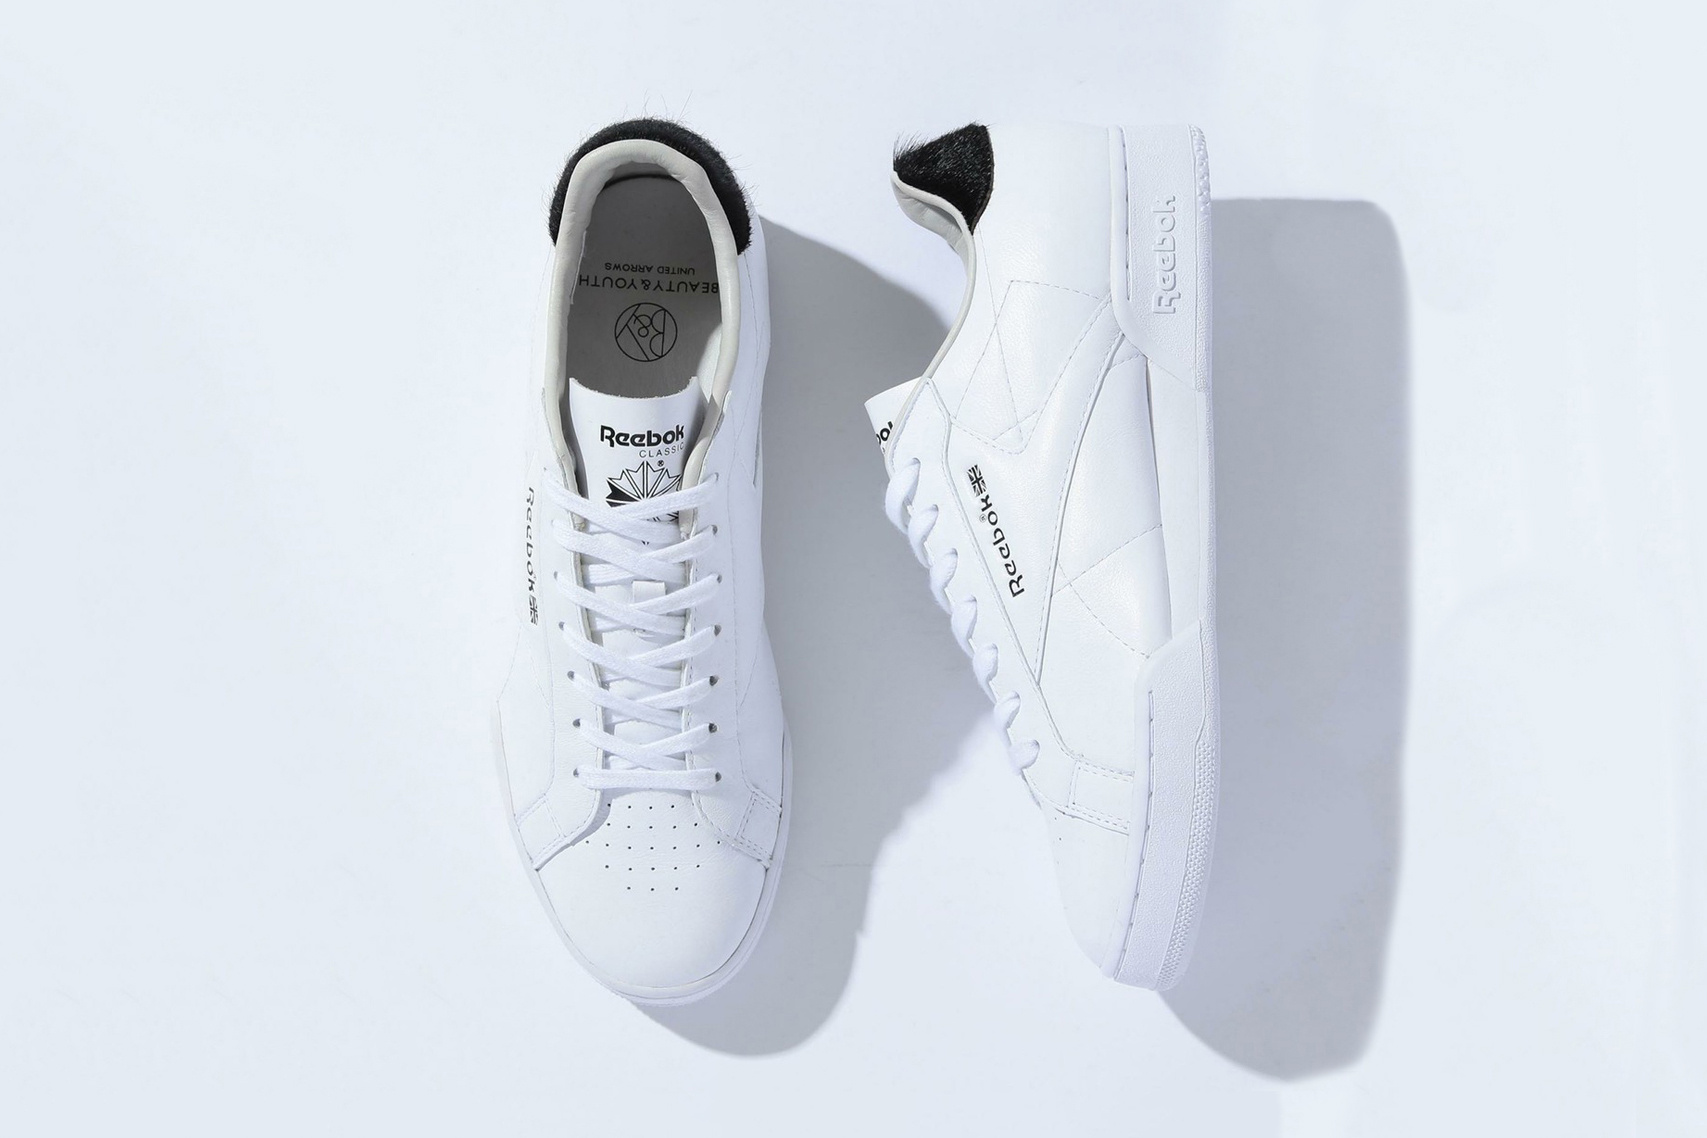 The Reebok Tennis Sneaker [SneakPeak] reebok npc uk ii 1